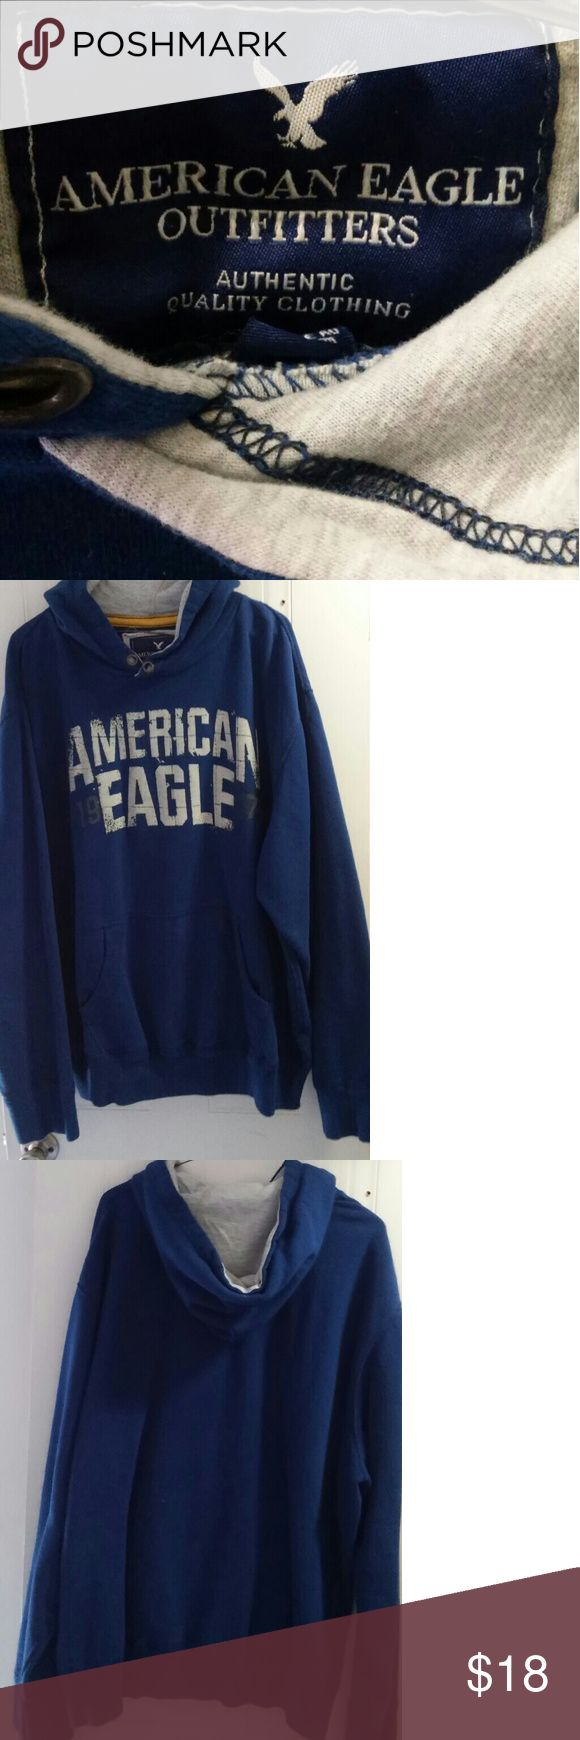 American Eagle Brand New Sweater American Eagle Outfitters Brand New Never Used Sweater American Eagle Outfitters Jackets & Coats